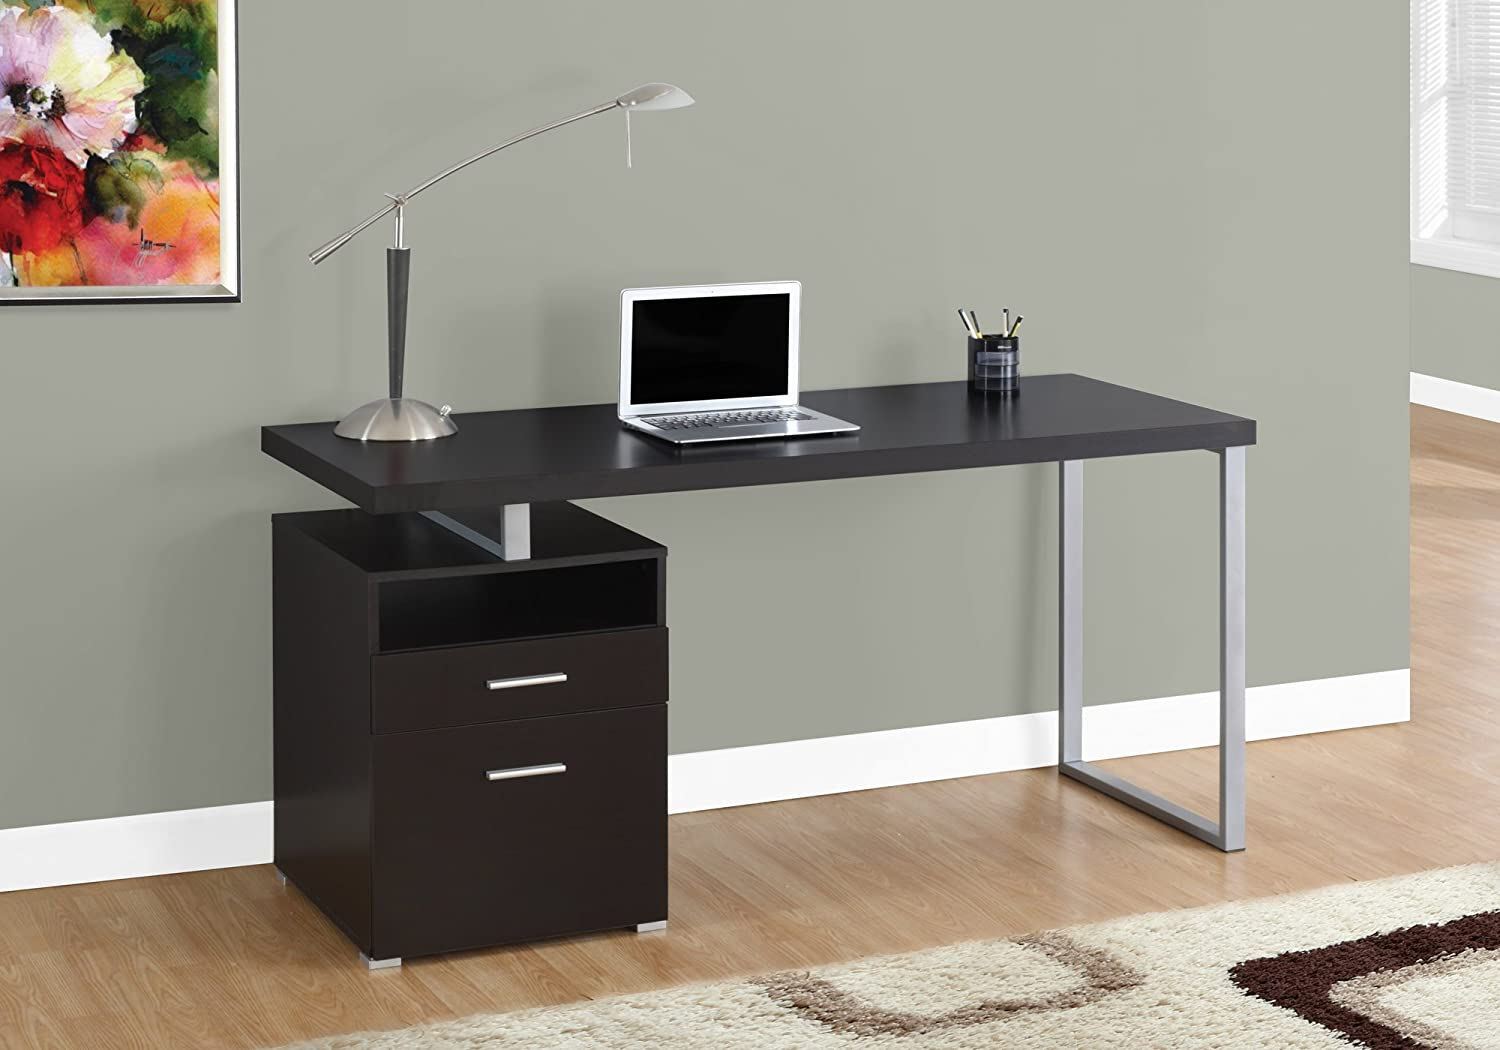 """Monarch Specialties I 7143 I 7145 Computer Writing Desk for Home & Office Laptop Table with Drawers Open Shelf and File Cabinet-Left or Right Set Up, 60"""" L, Cappuccino"""